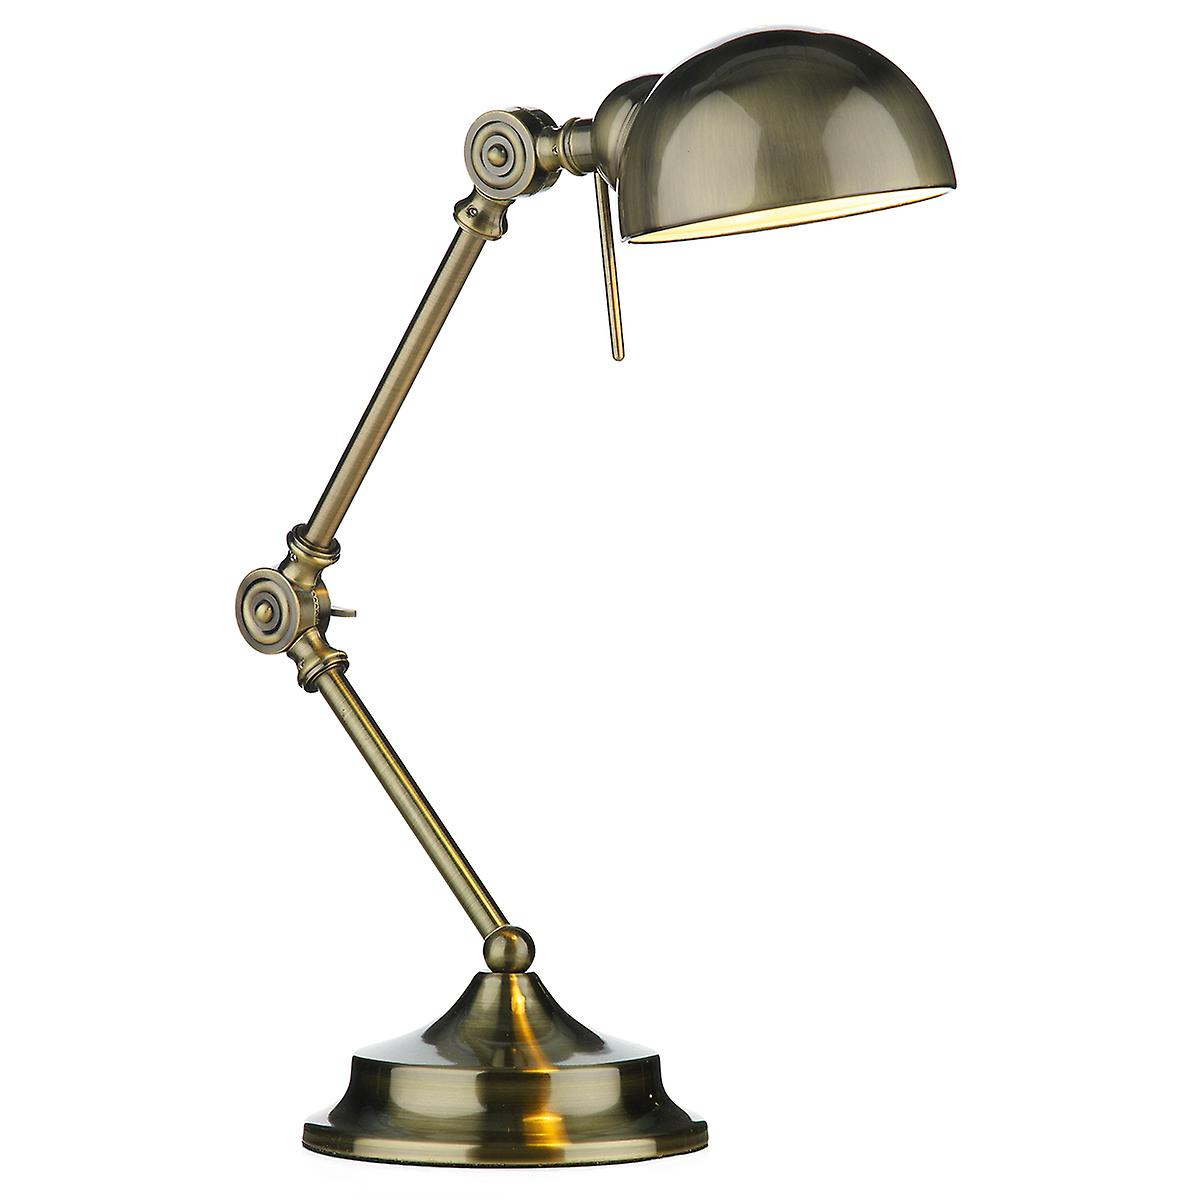 Dar RAN4075 Ranger Table Lamp In A Antique Brass Finish